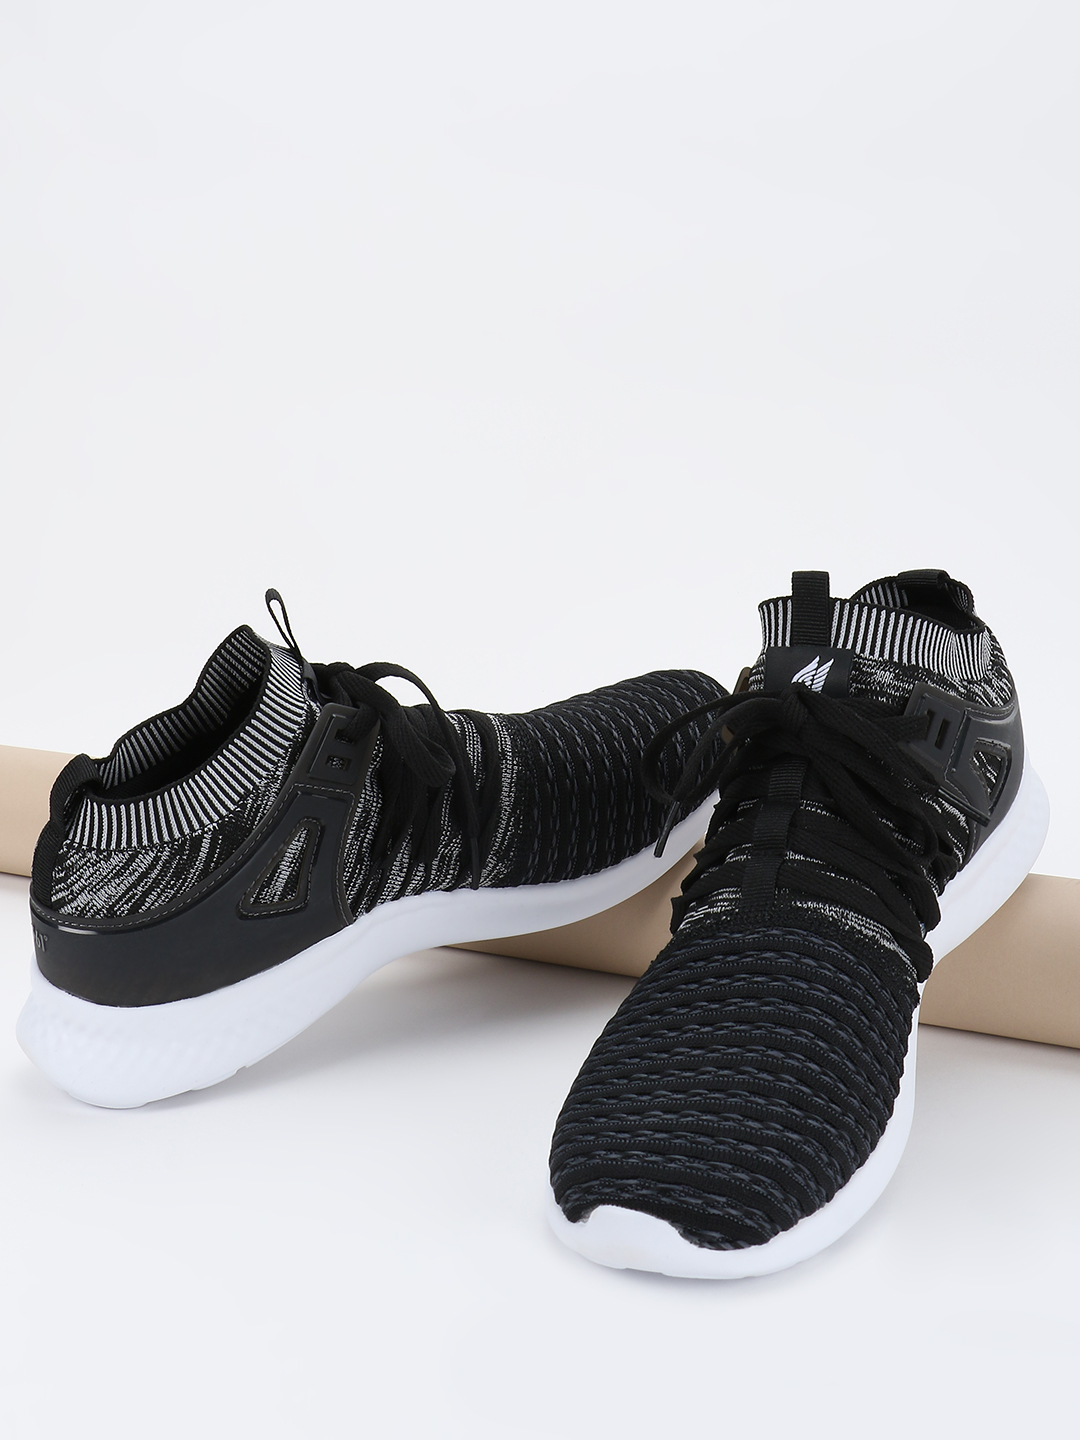 361 Degree Black Knitted Lace-Up Sockliner Trainers 1